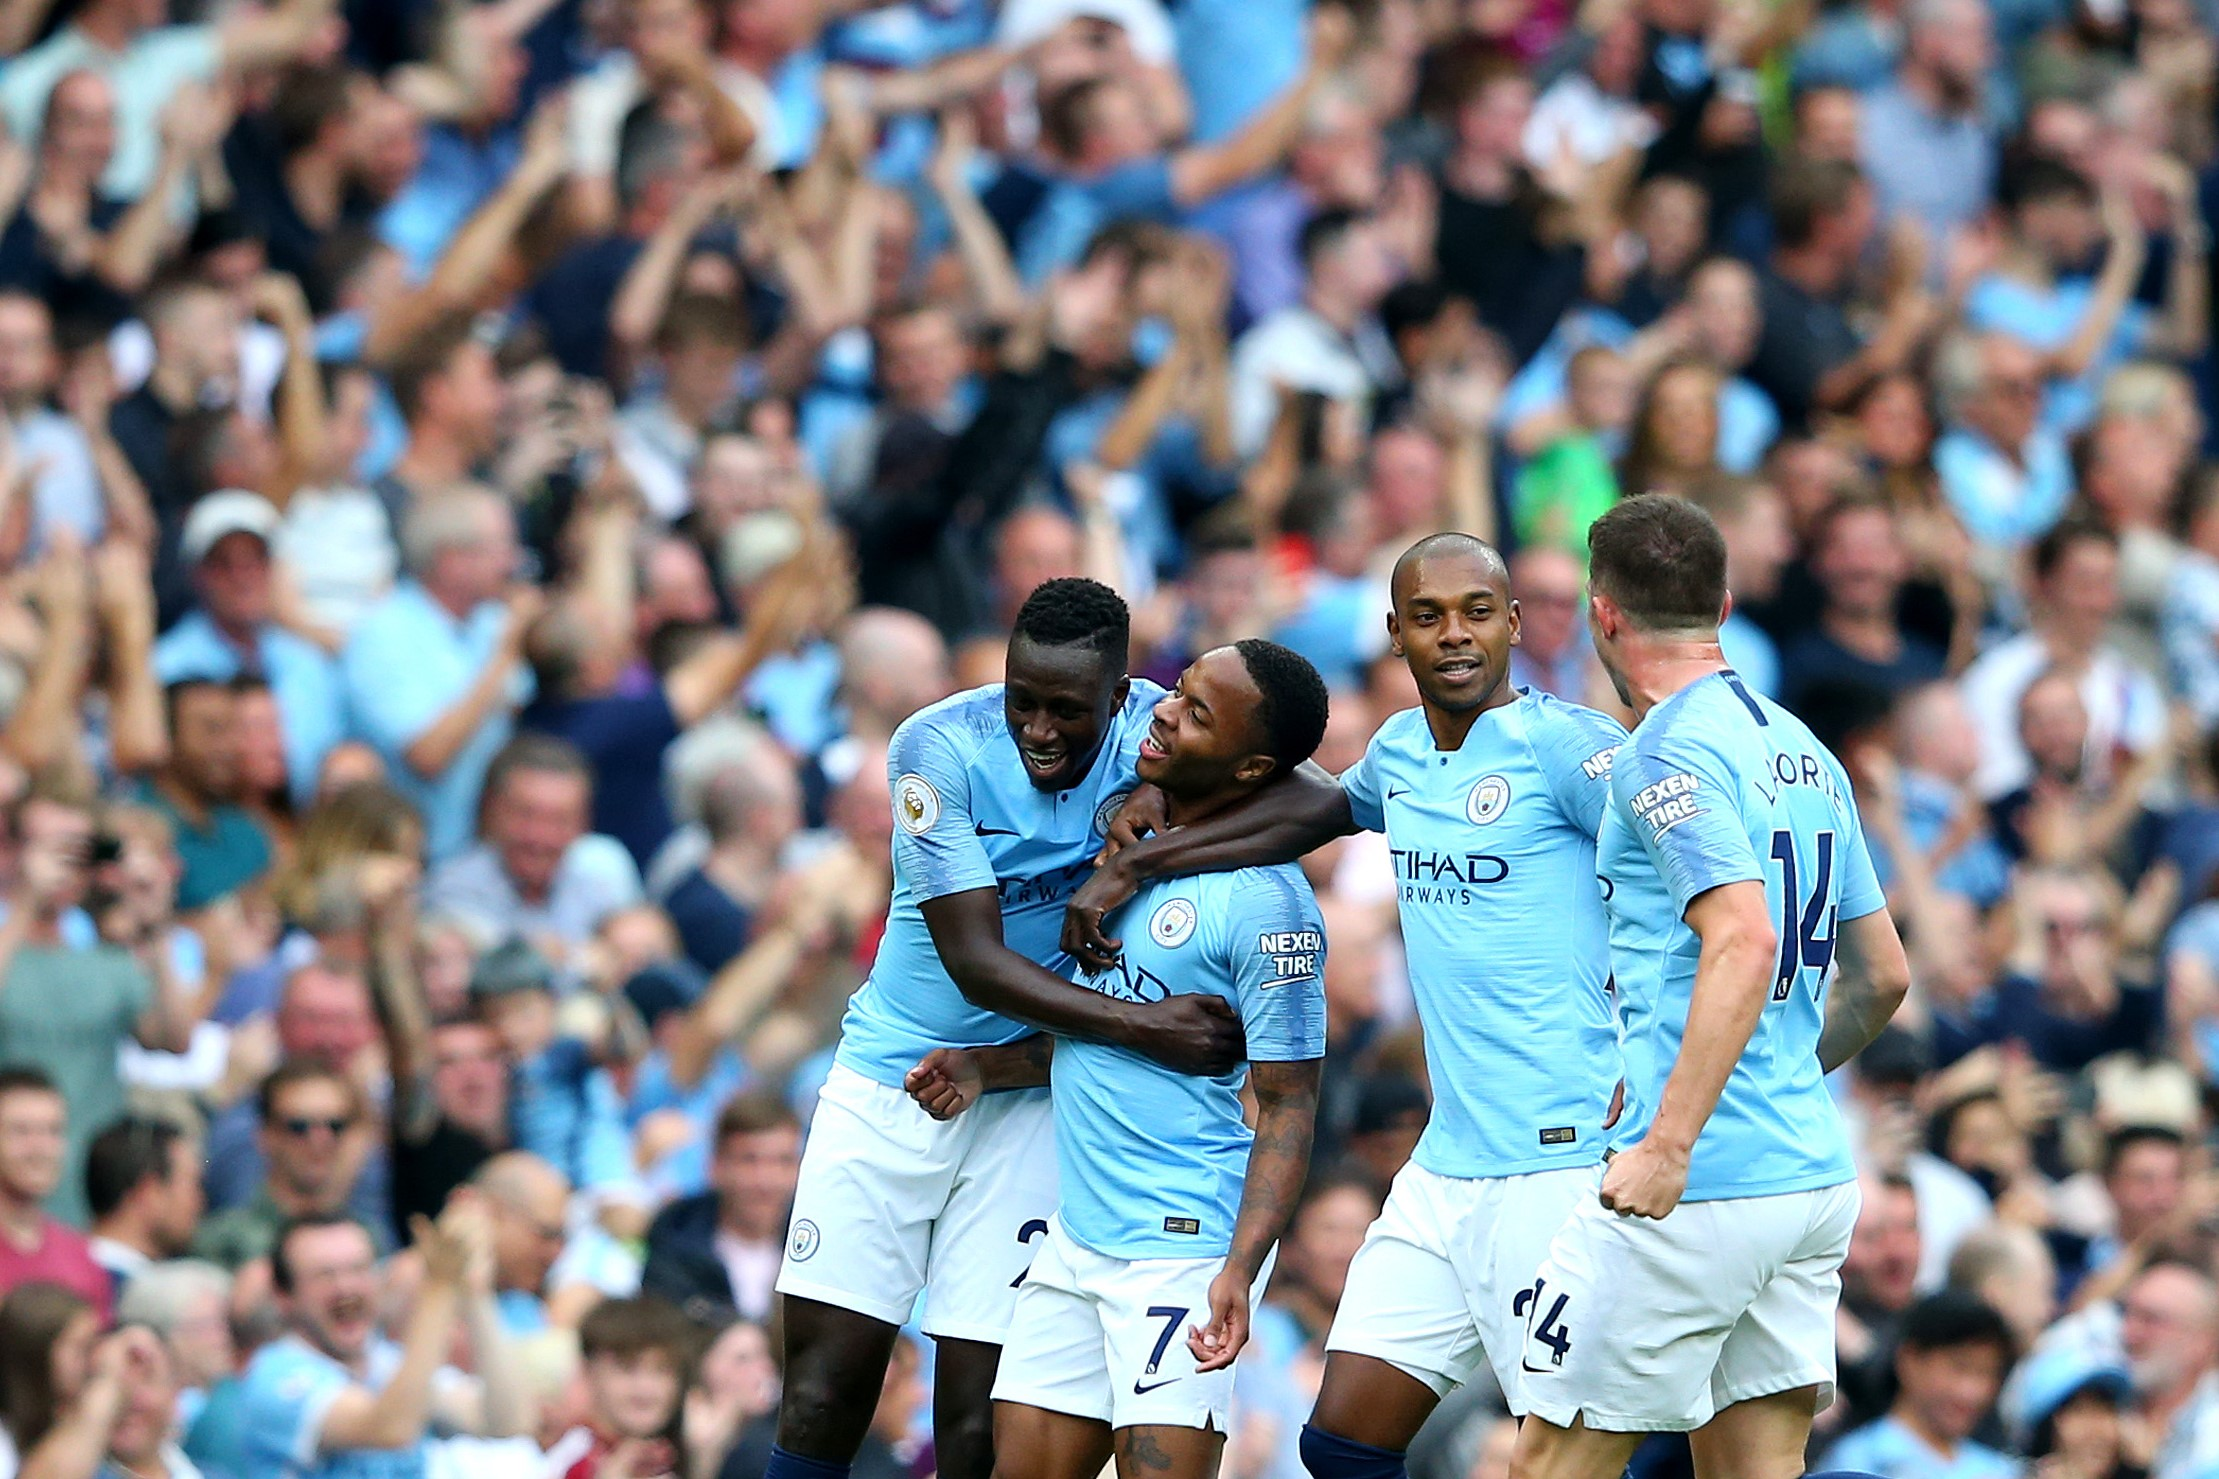 Success Of Premier League A Boost For Uk Finds Report